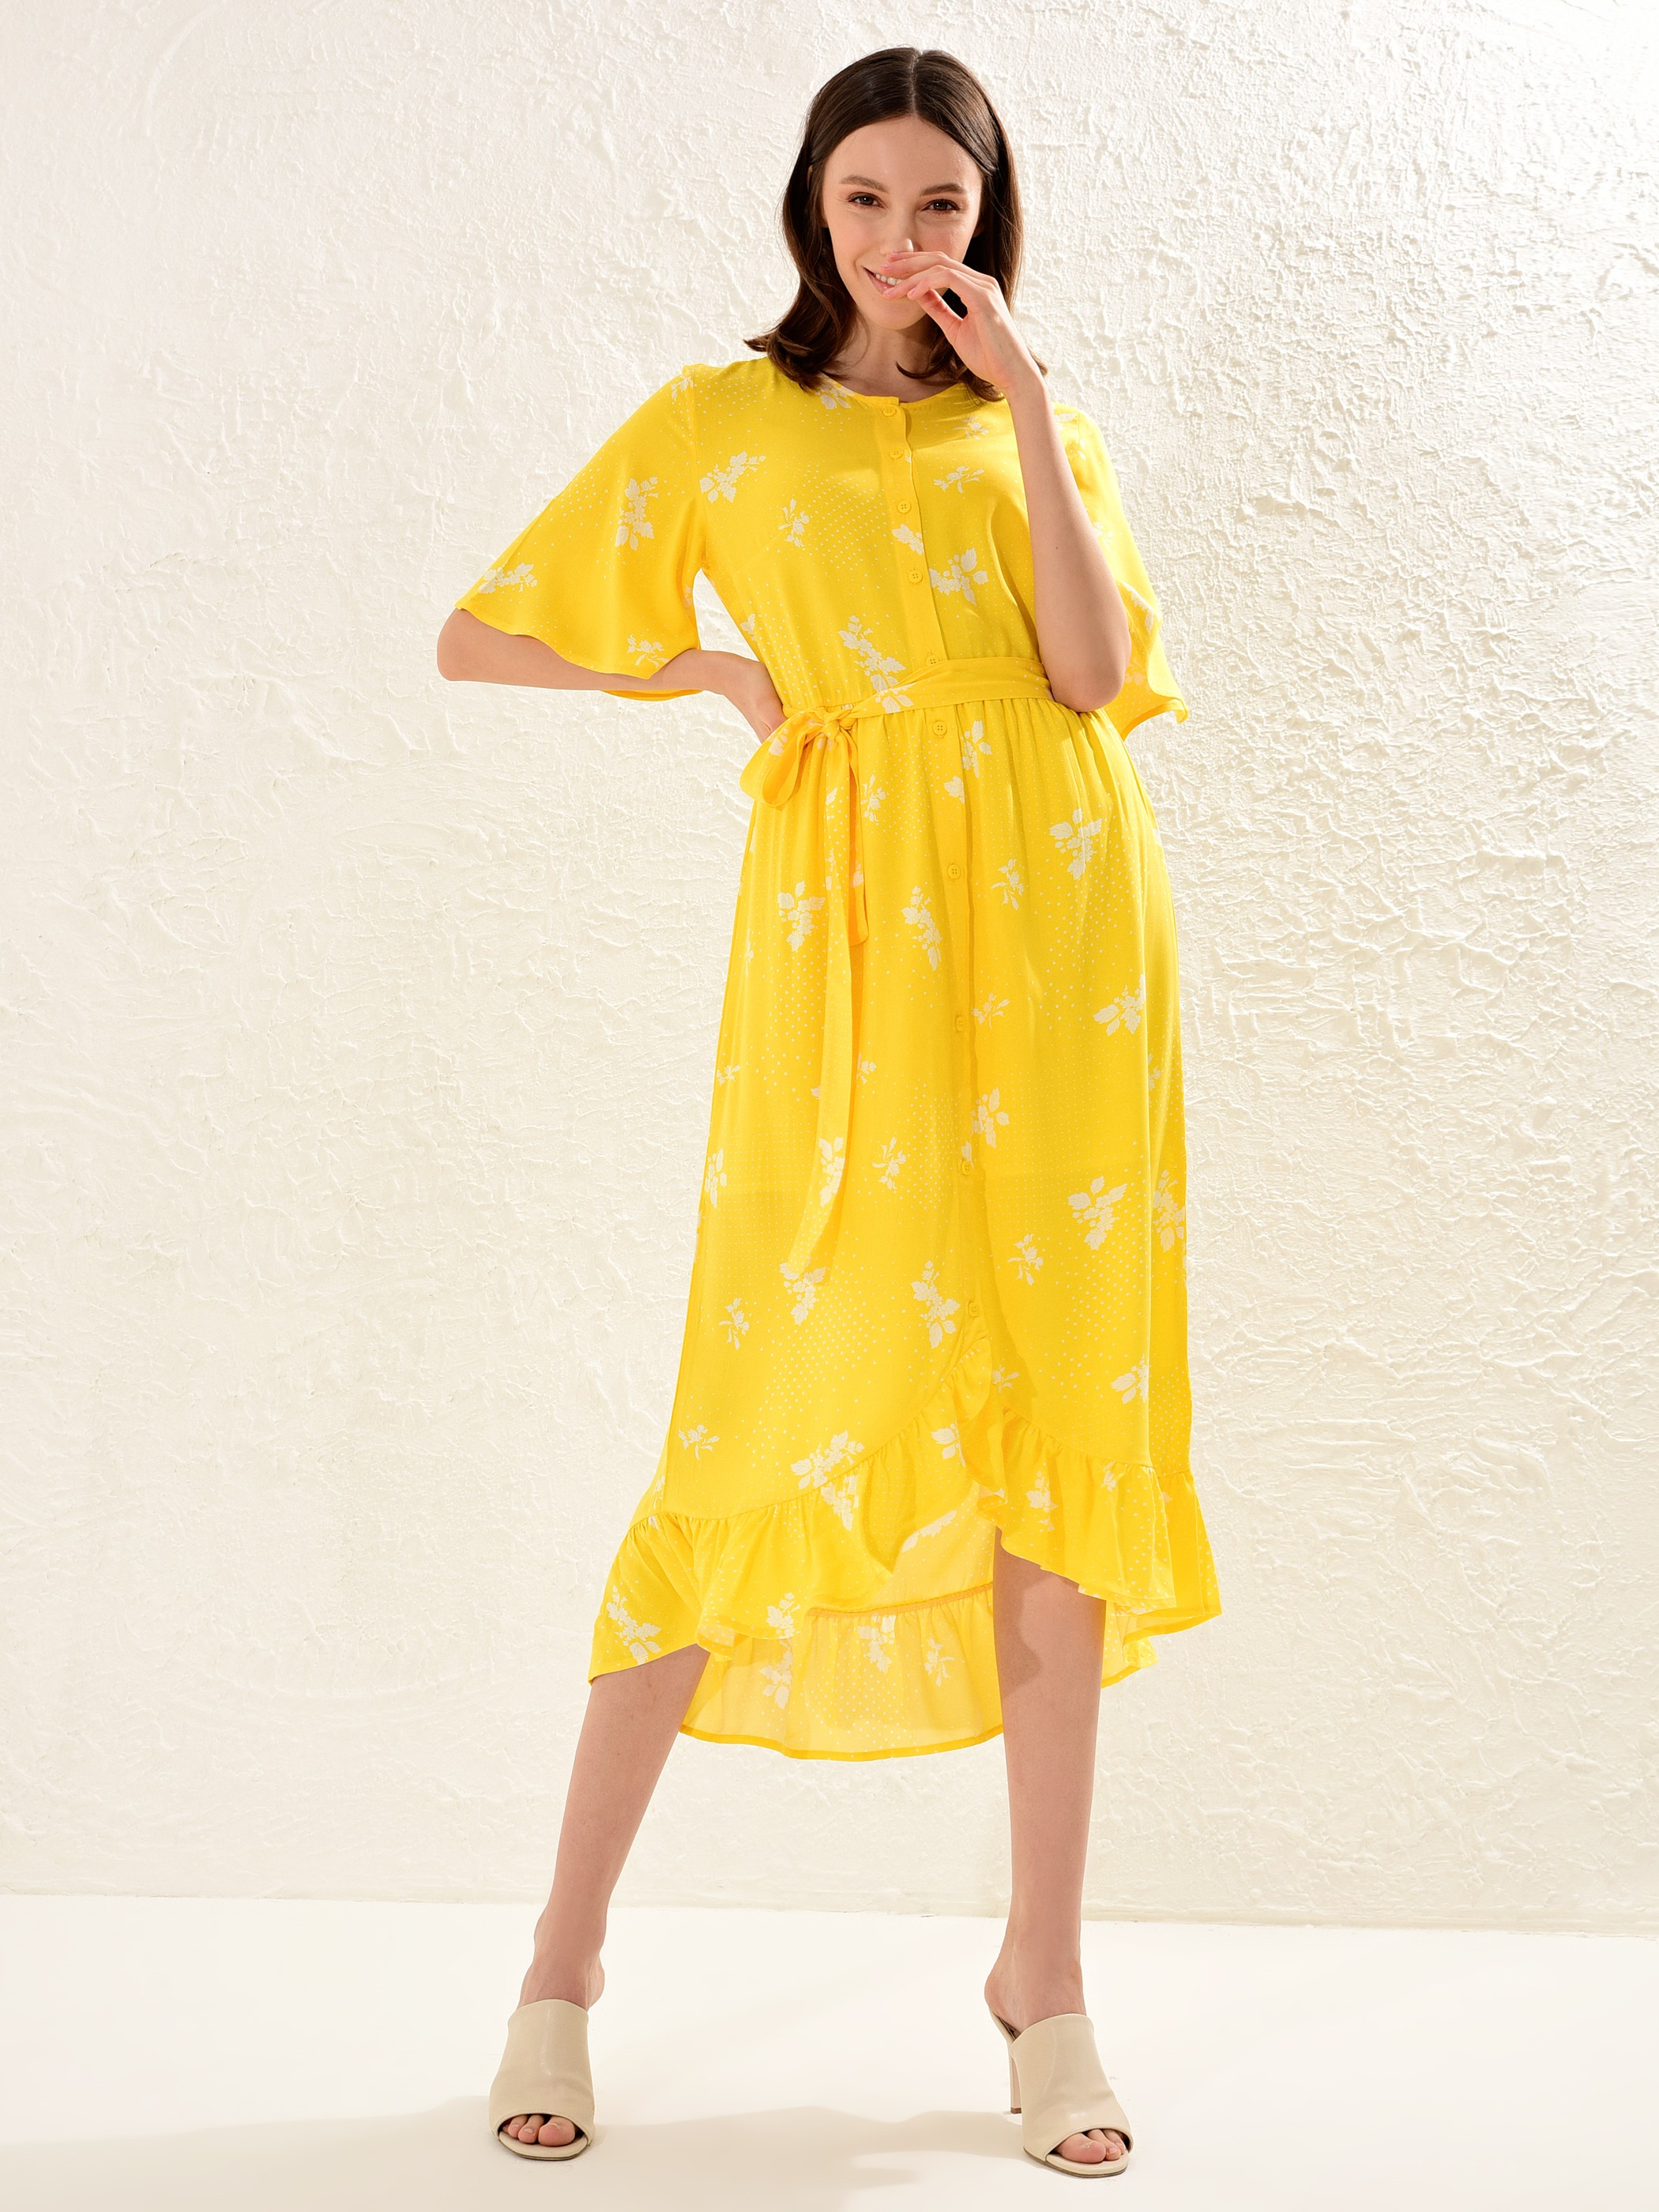 YELLOW - Waistband Figured Viscose Dress Mother and Daughter Matching - 0SE707Z4